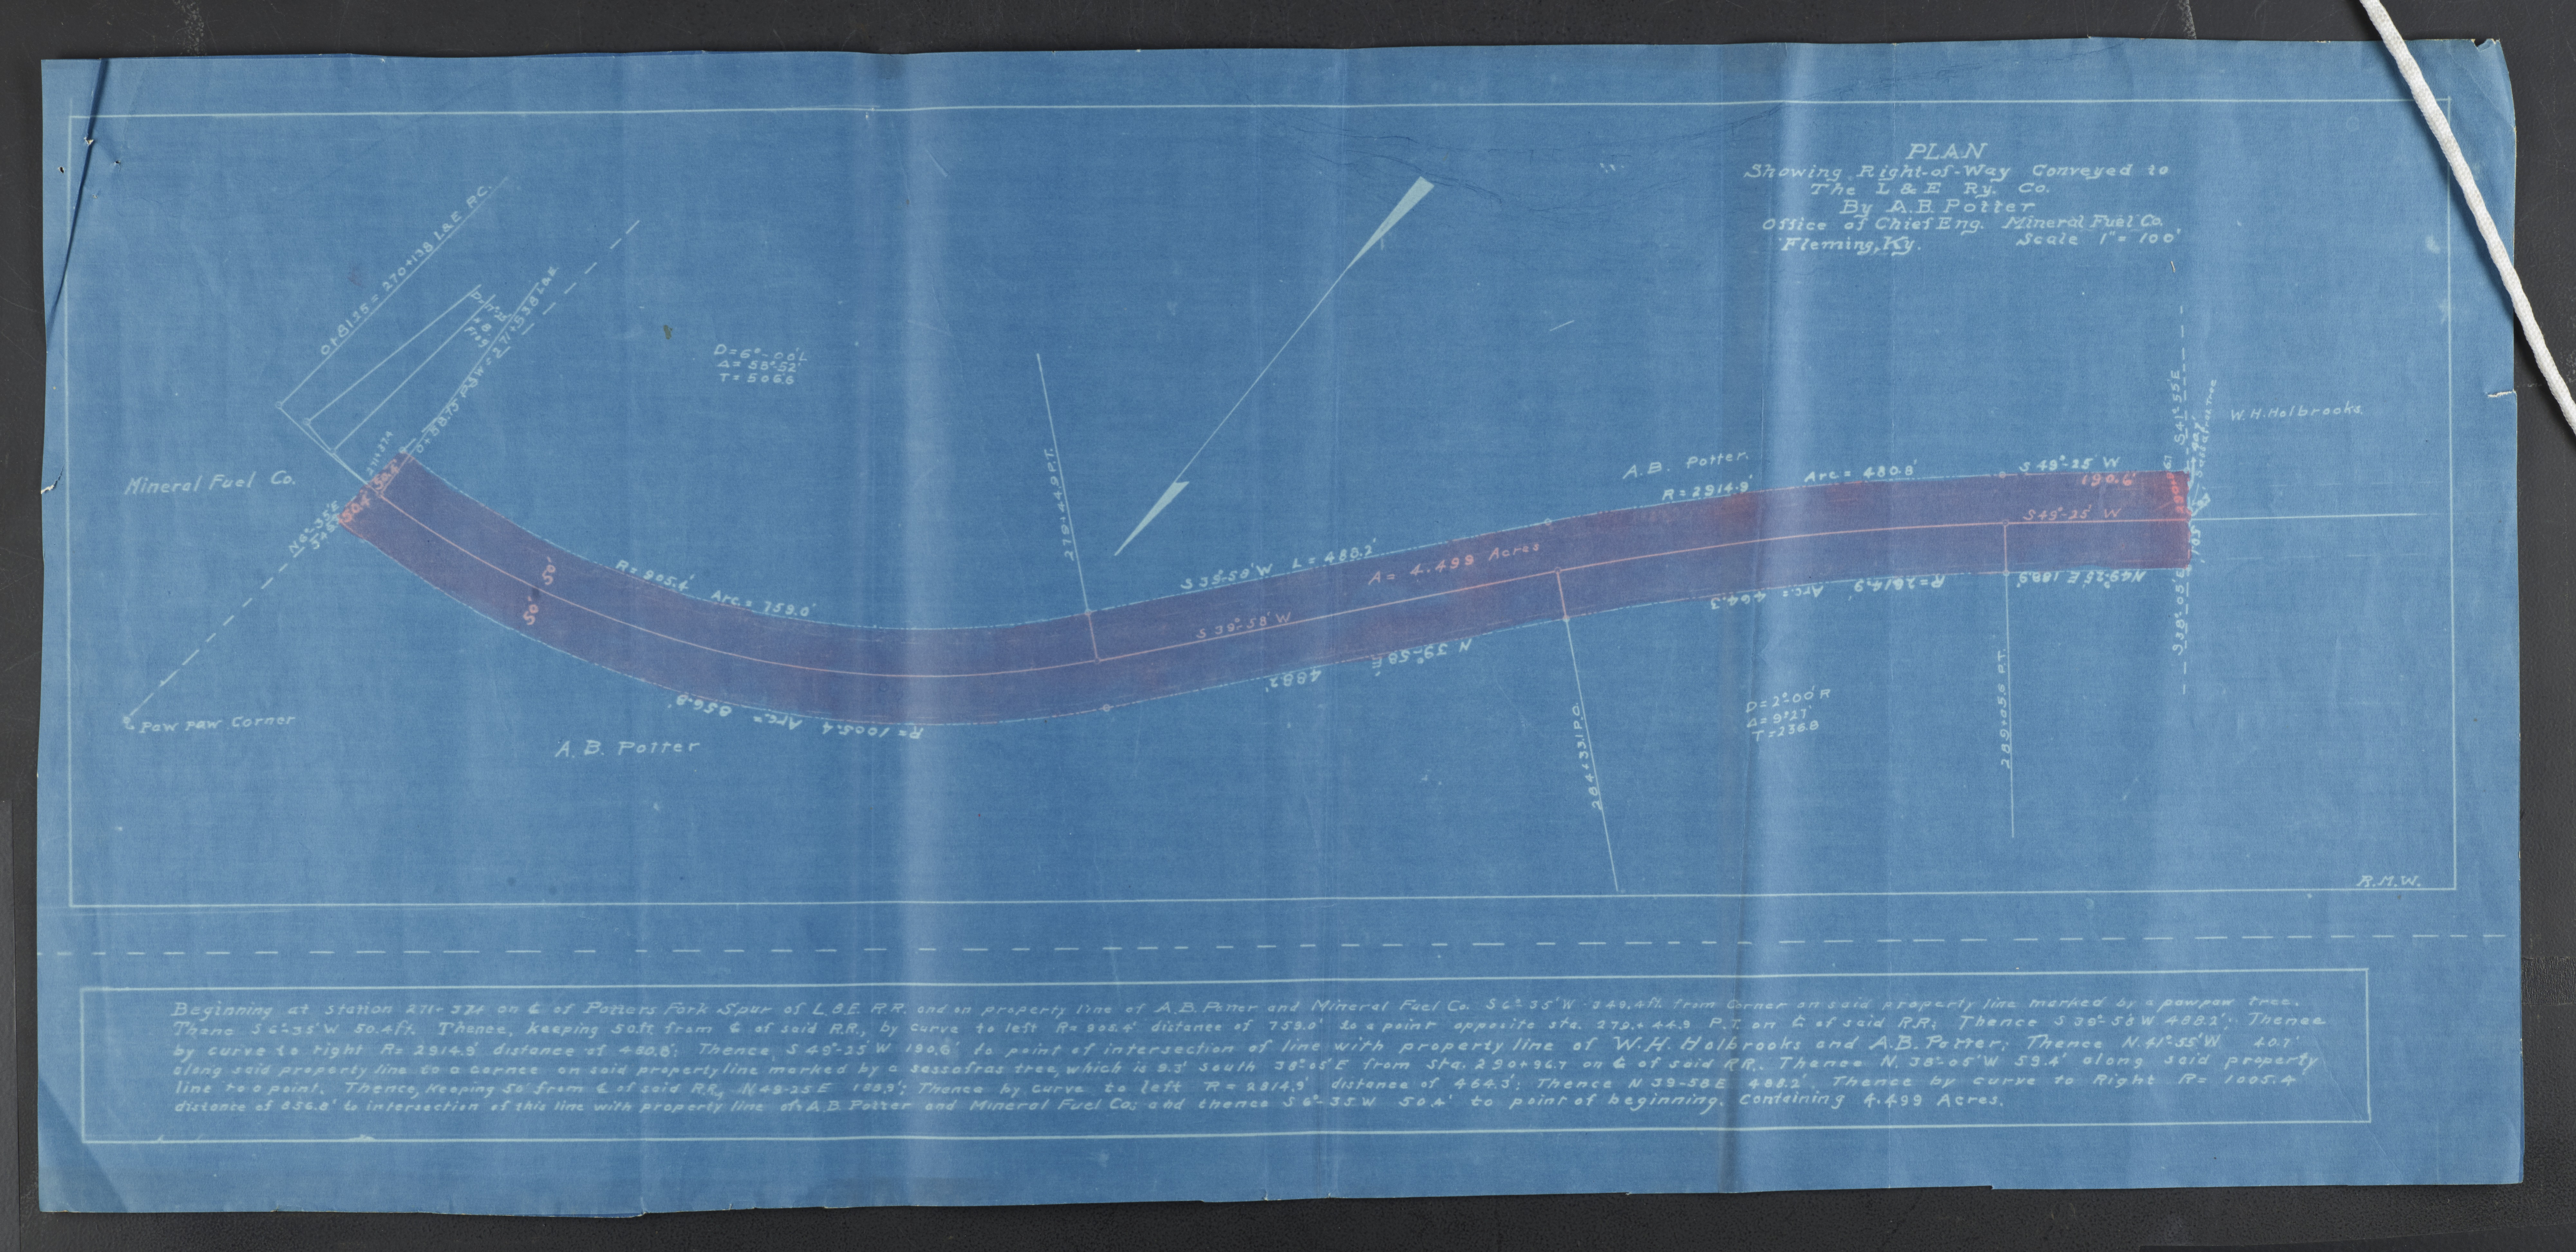 25 blueprint of plan showing right of way conveyed to the le ry part of louisville and nashville railroad company and lexington and eastern railway company records malvernweather Images